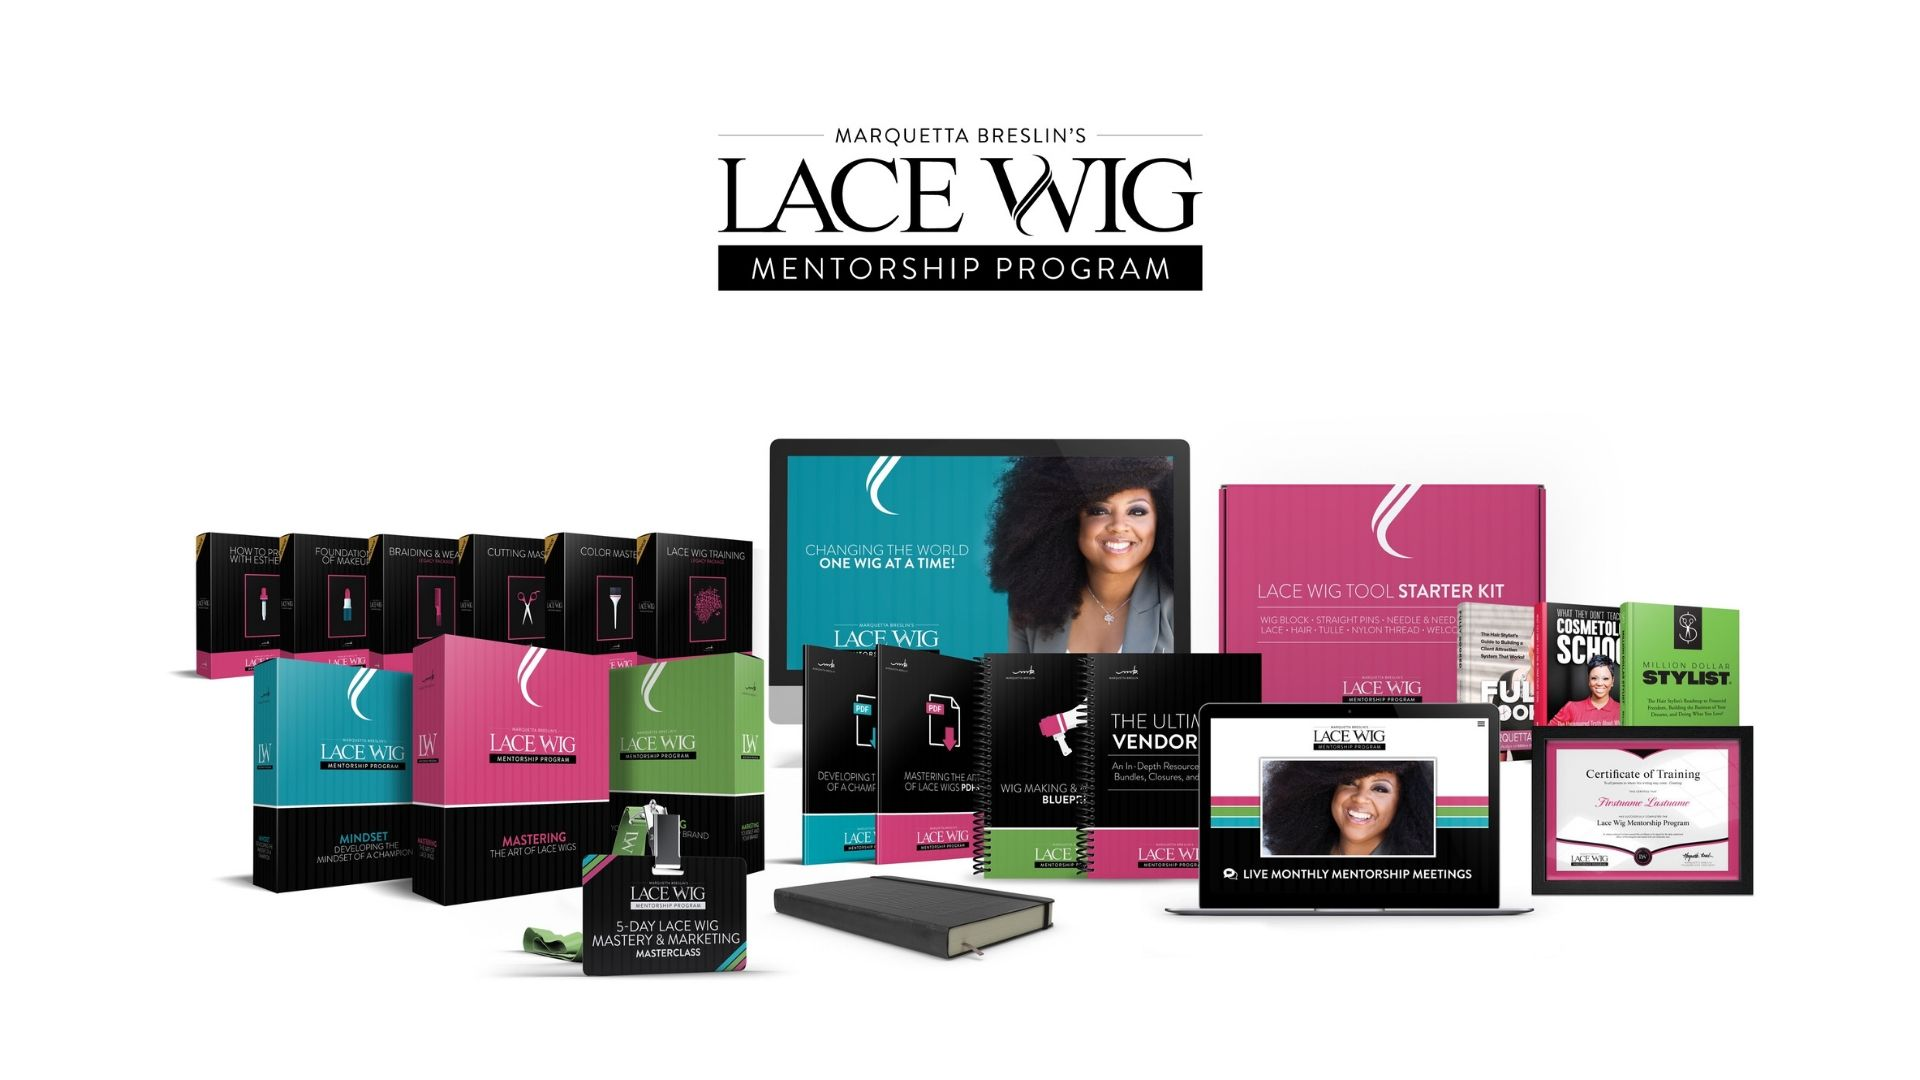 How To Choose The Right Hair For Making Lace Wigs 1